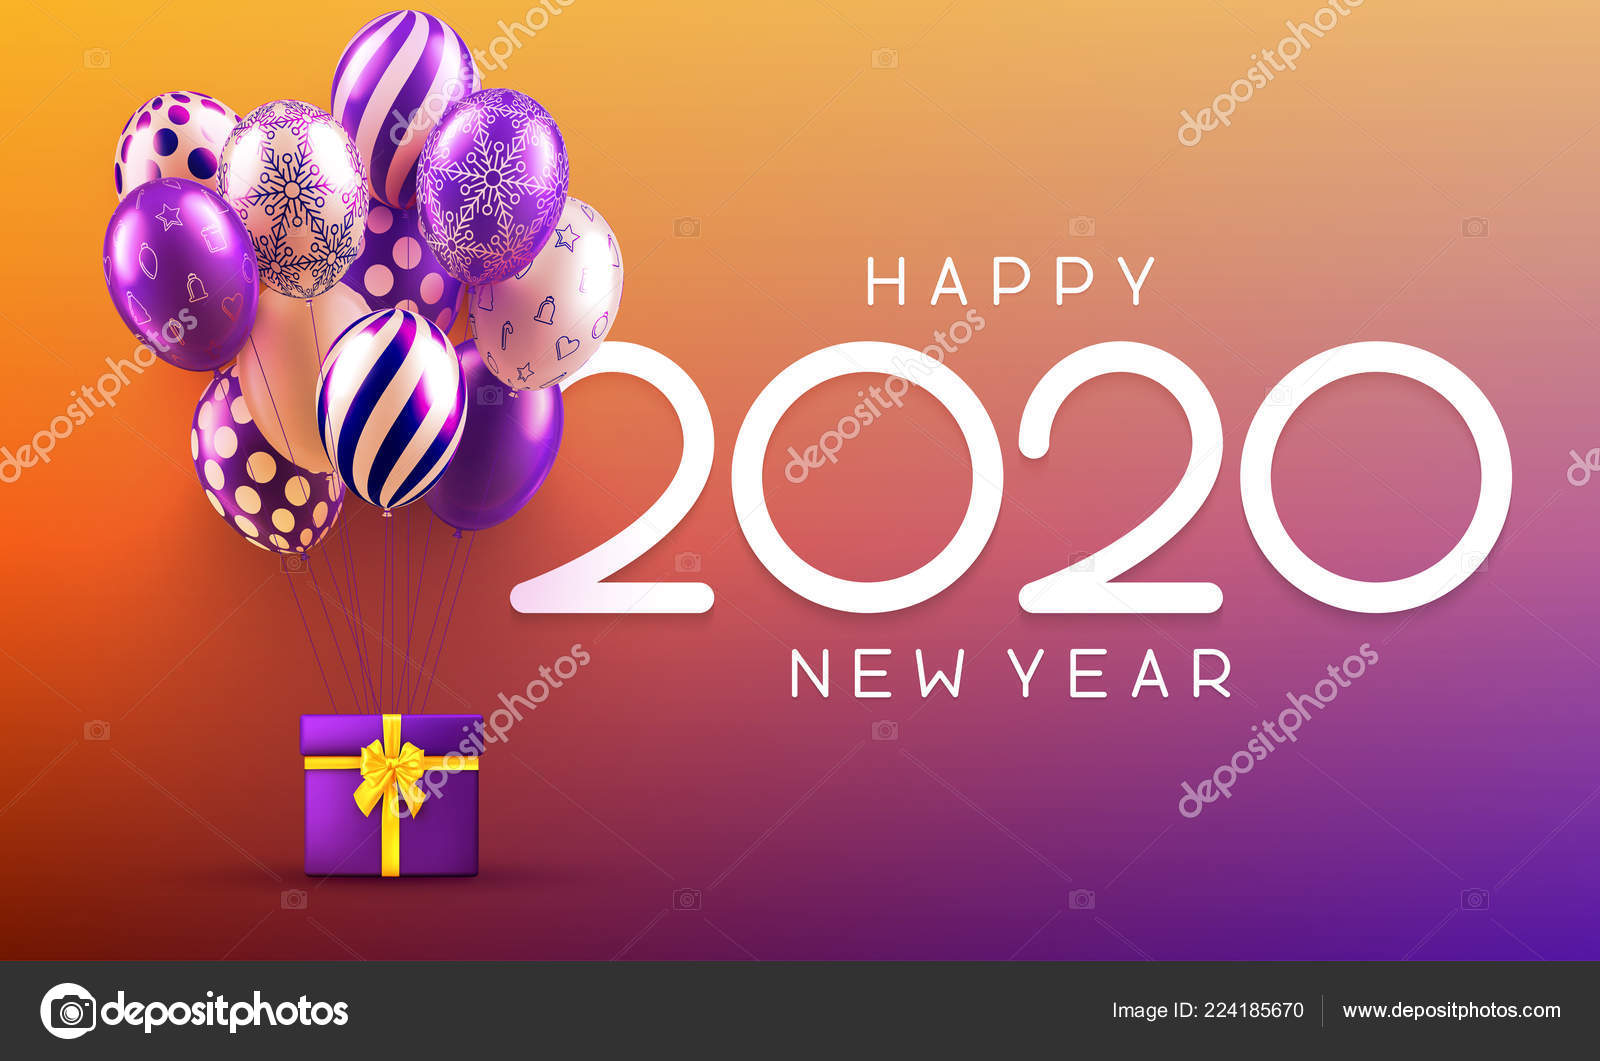 happy new year 2020 greeting card with gift and colorful balloon stock vector